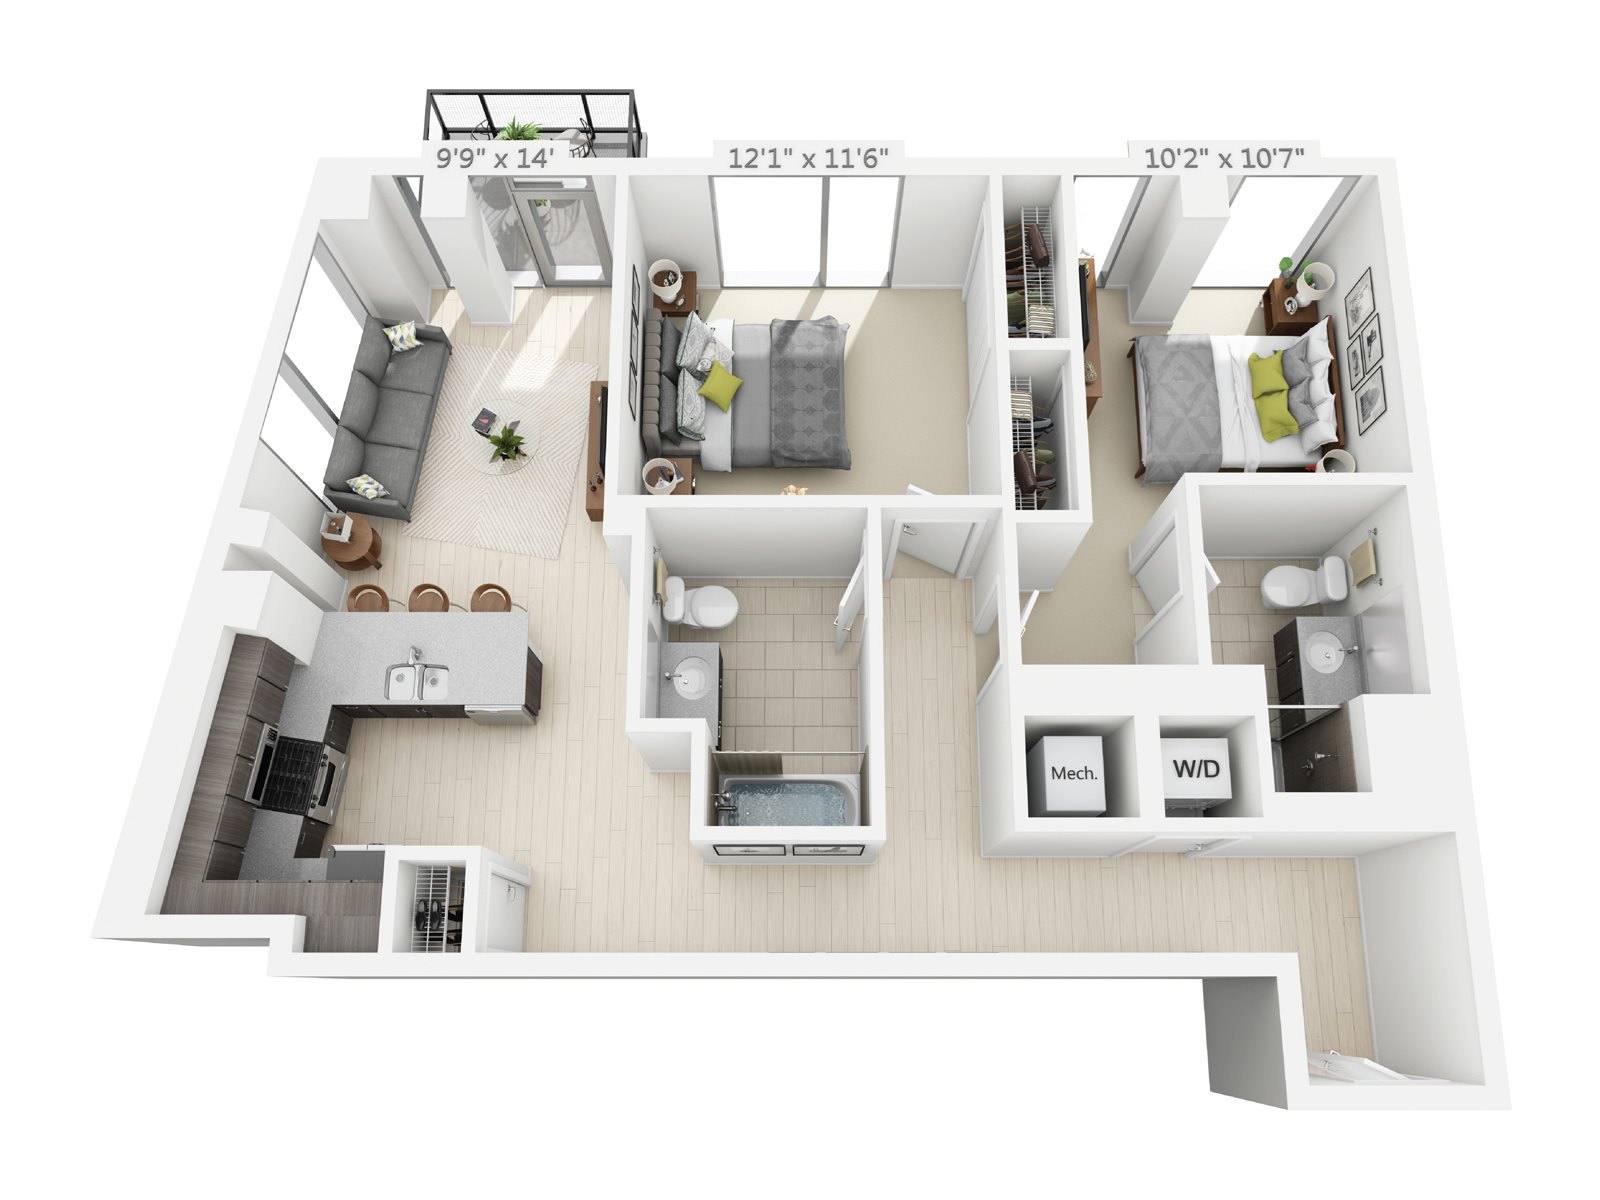 2 BEDROOM/2 BATH C6 Floor Plan 12